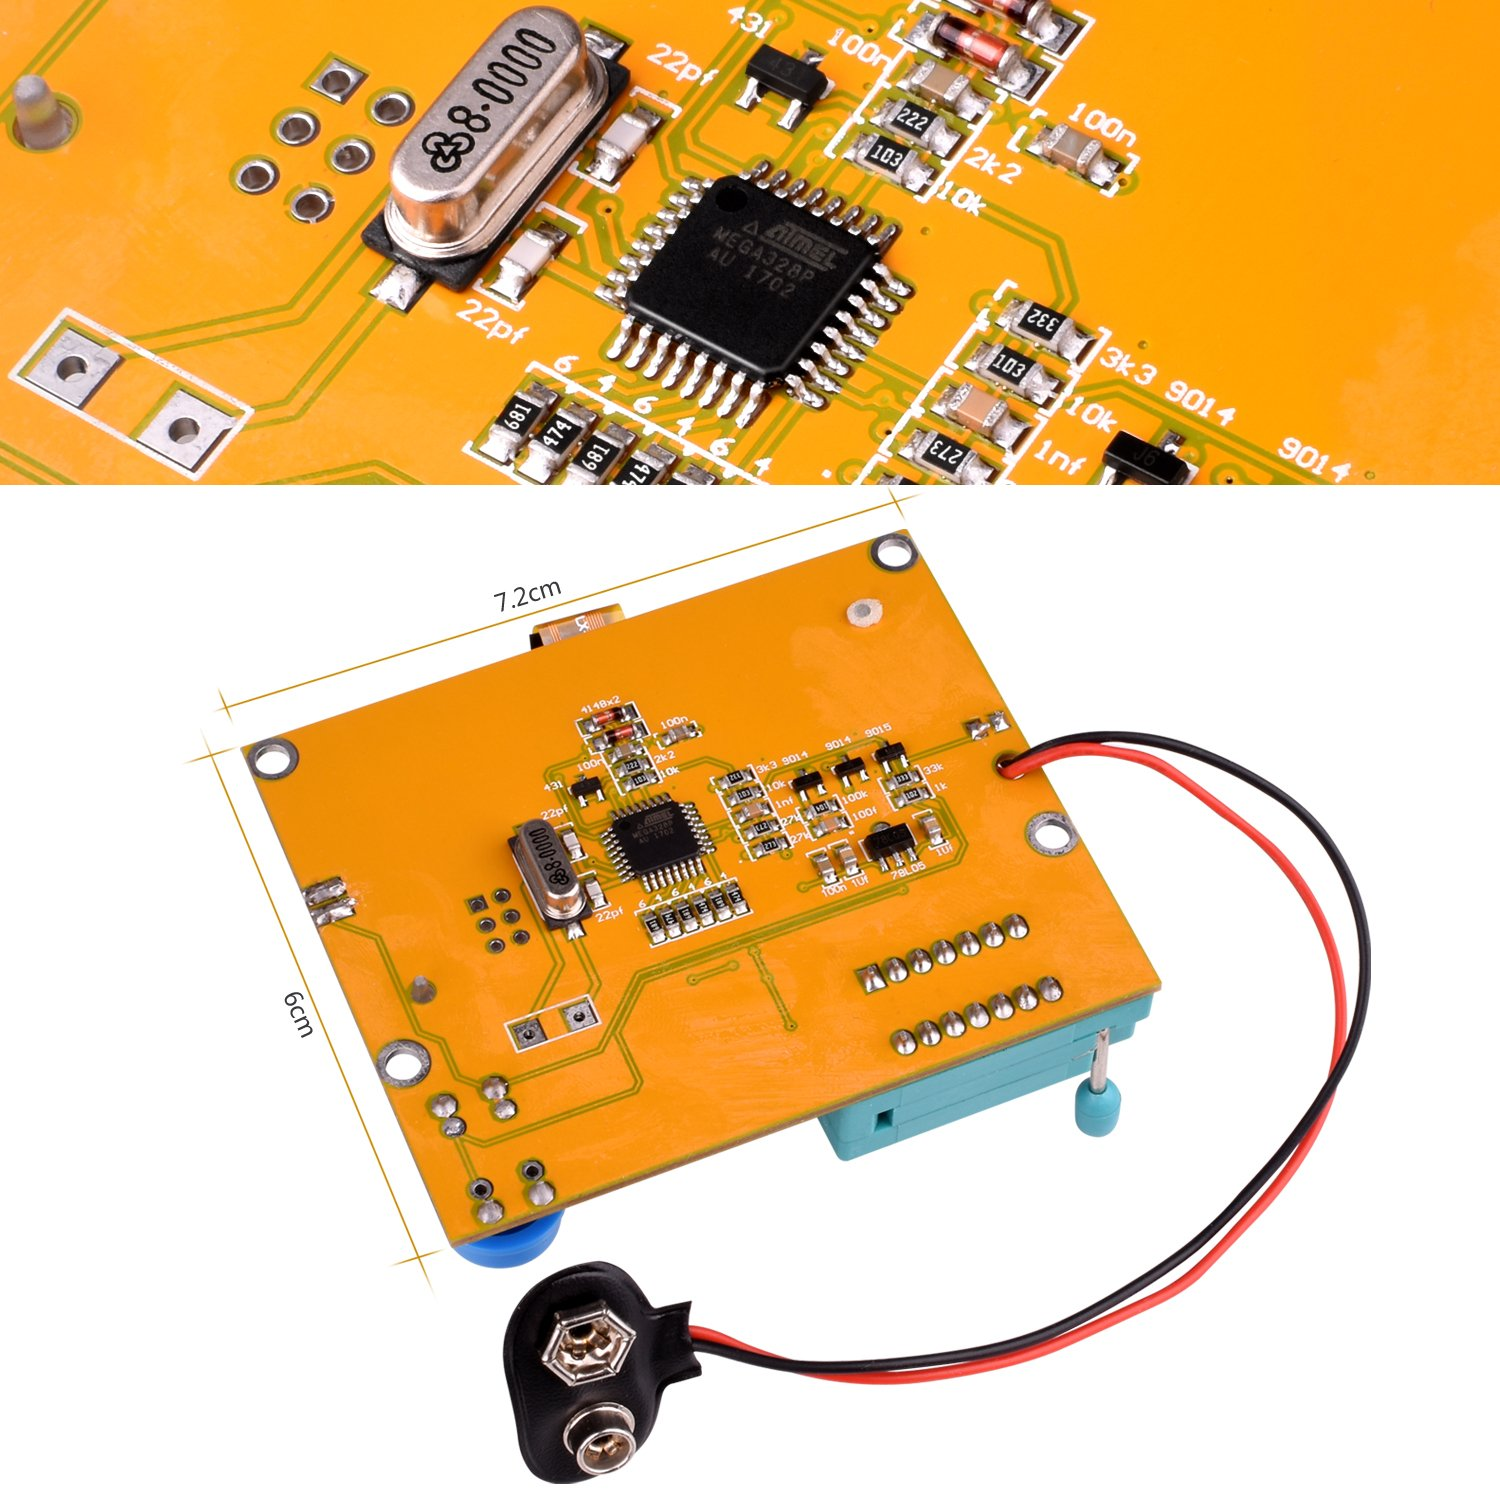 Multifunction Meter Diy Kit Kuman Mega 328 Graphic Transistor Function Generator Besides Pin Xr2206 Circuit On Pnp Diodes Triode Capacitor Esr Scr Mosfet Resistor Inductance Lcd Display Checker With Case And Screwdriver K77 Industrial Scientific